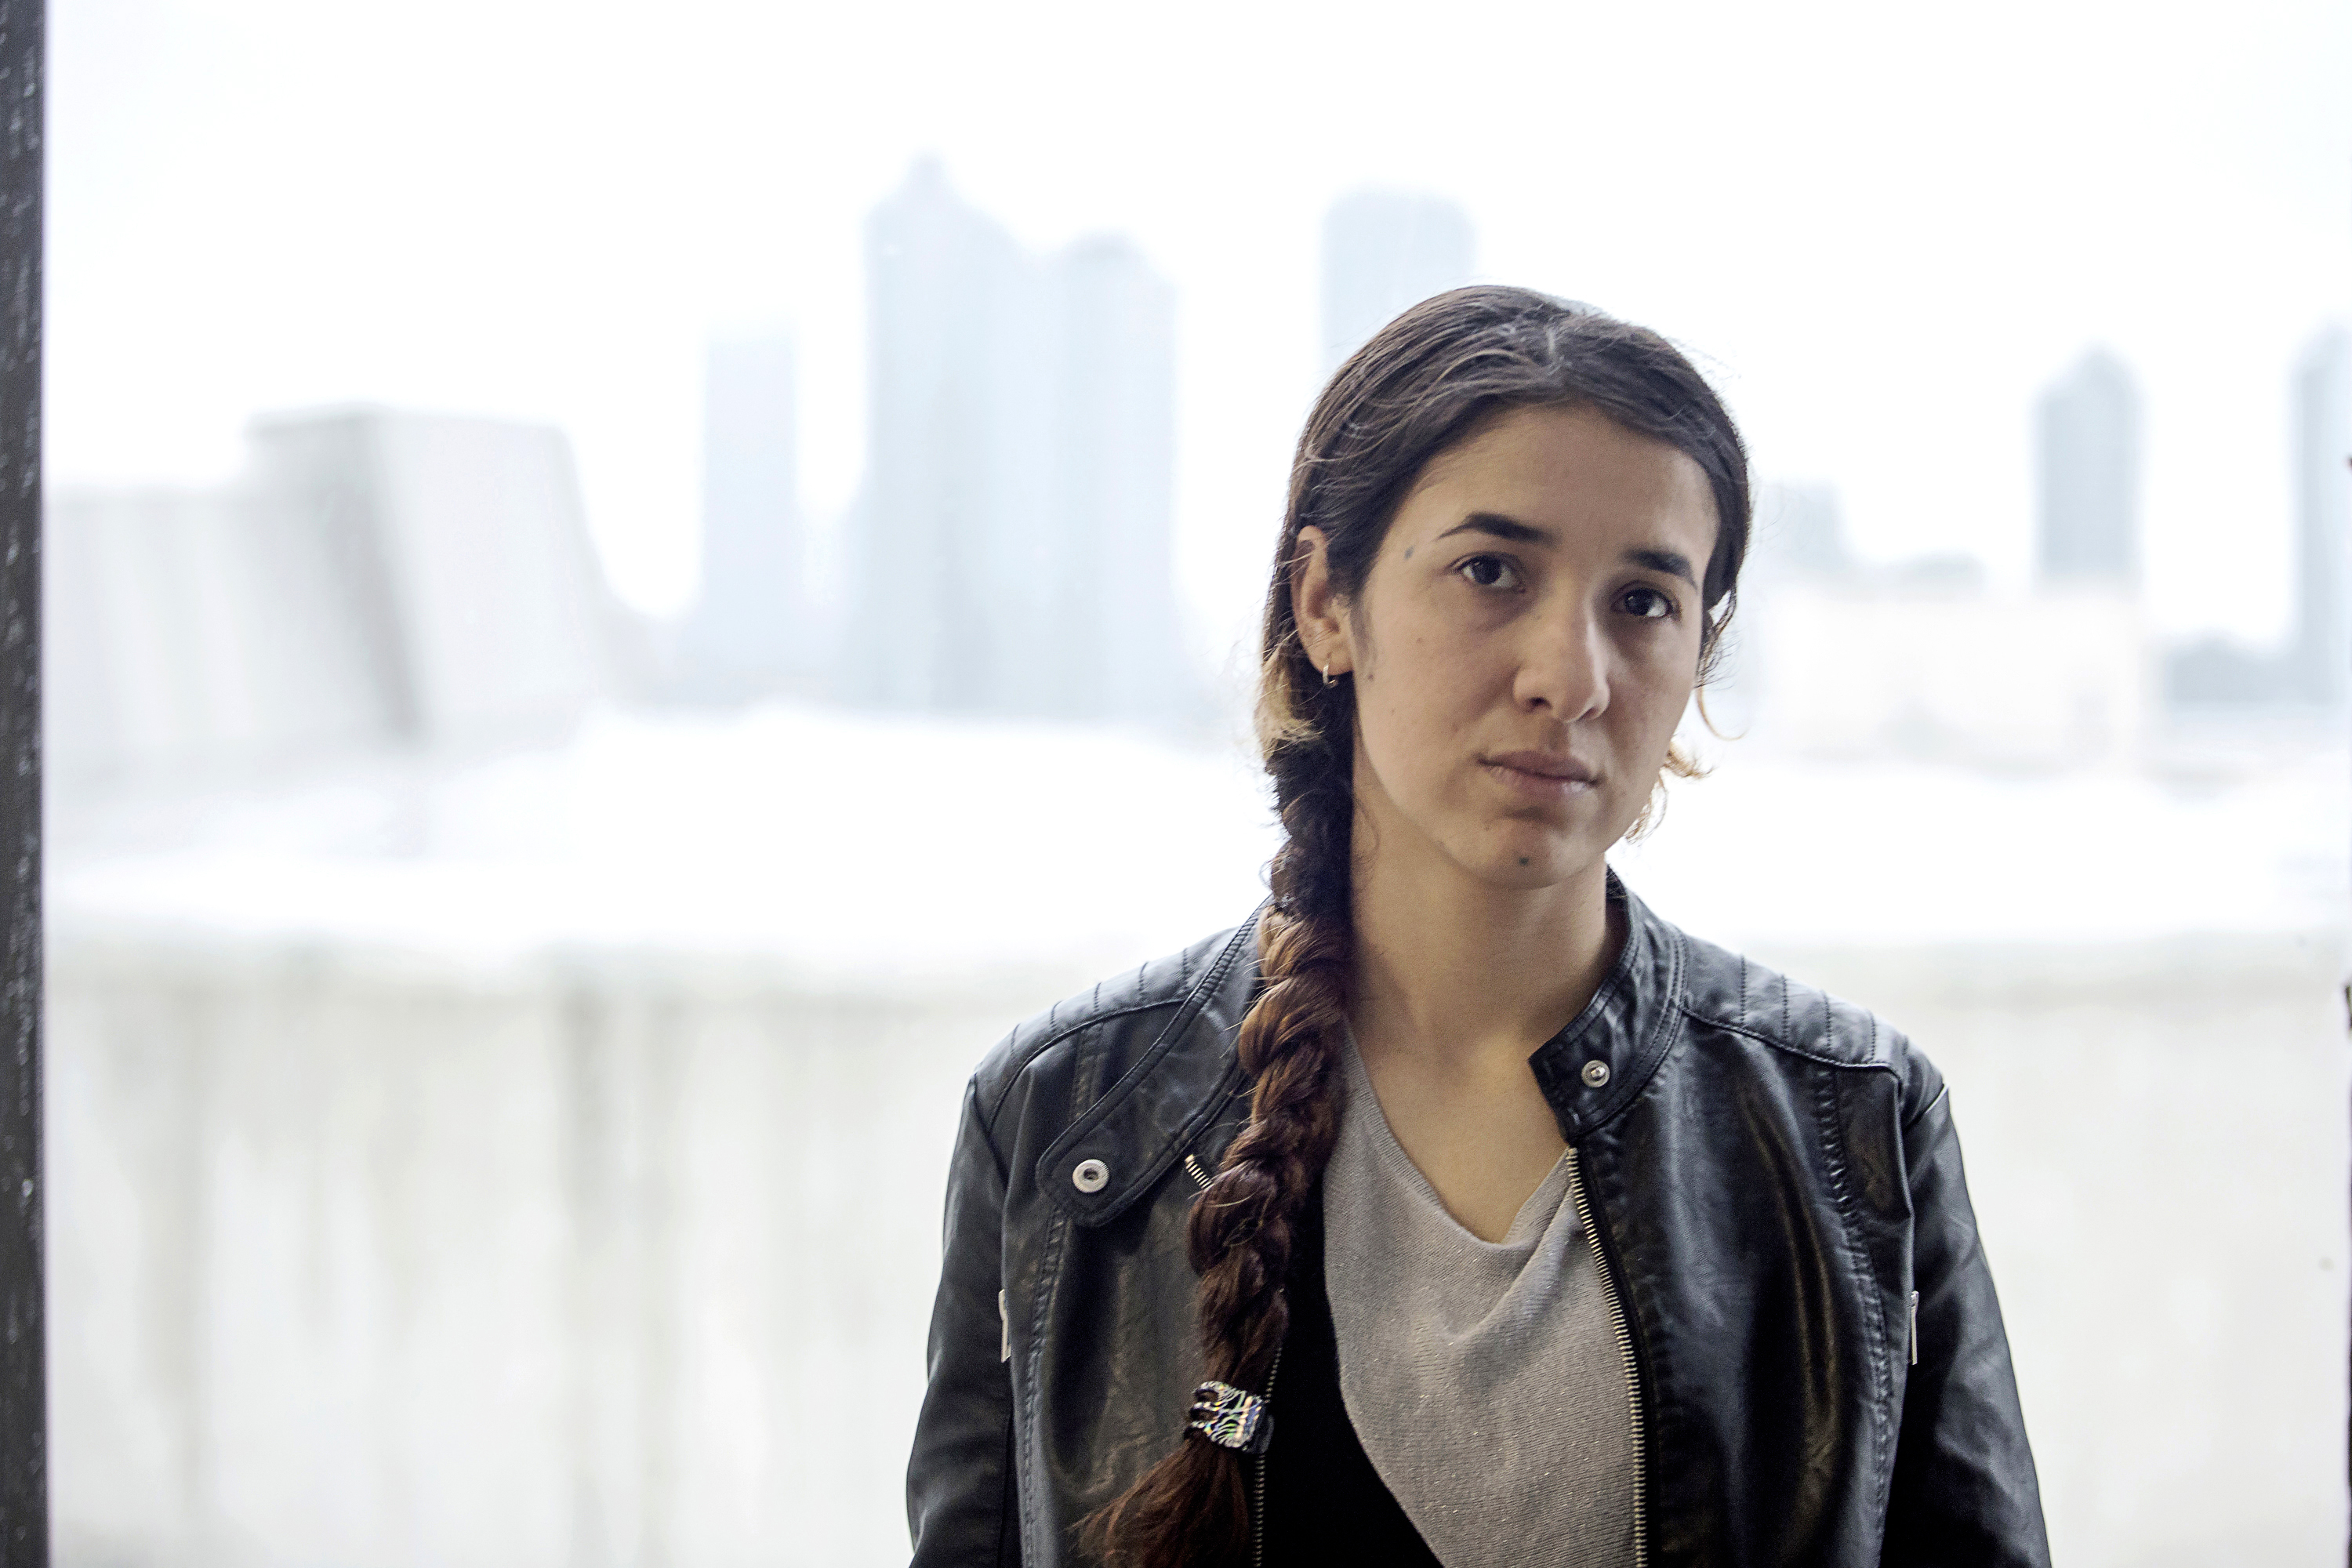 Nadia, a young Iraqi Yezidi who was abducted into slavery by members of ISIS, is photographed in the U.S.